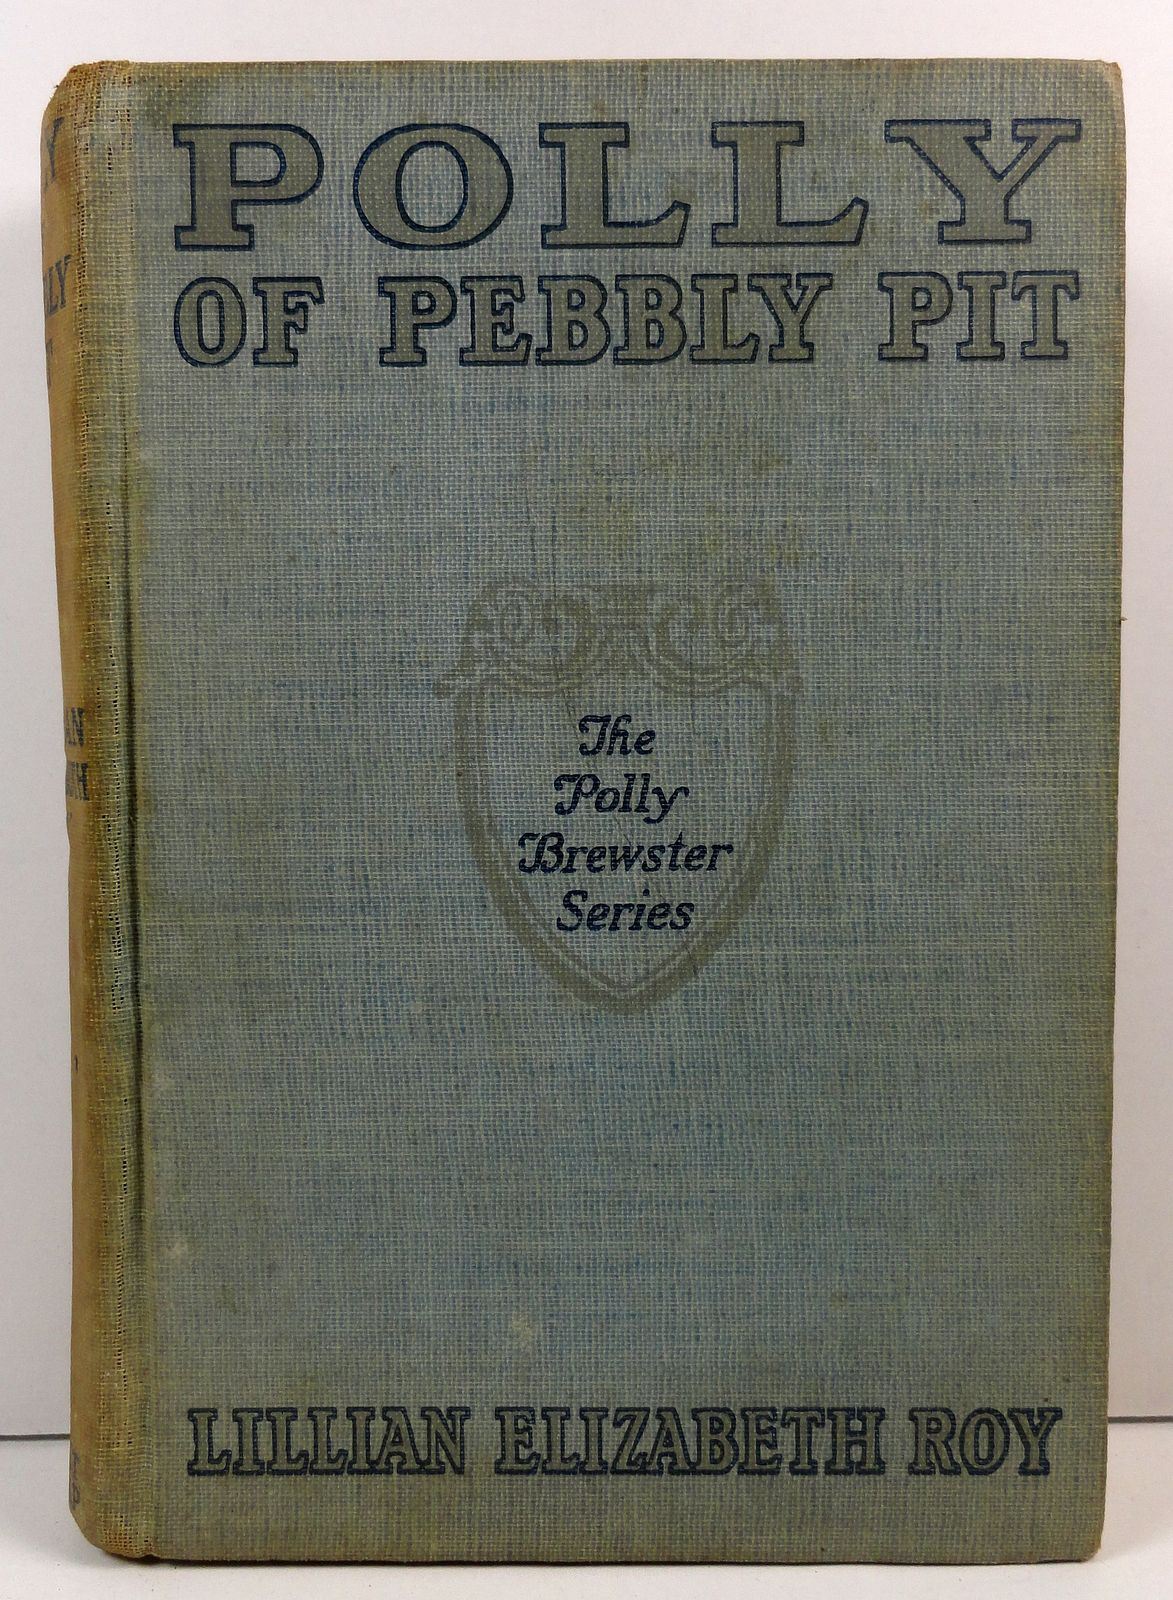 Polly of Pebbly Pit by Lillian Elizabeth Roy Polly Brewster